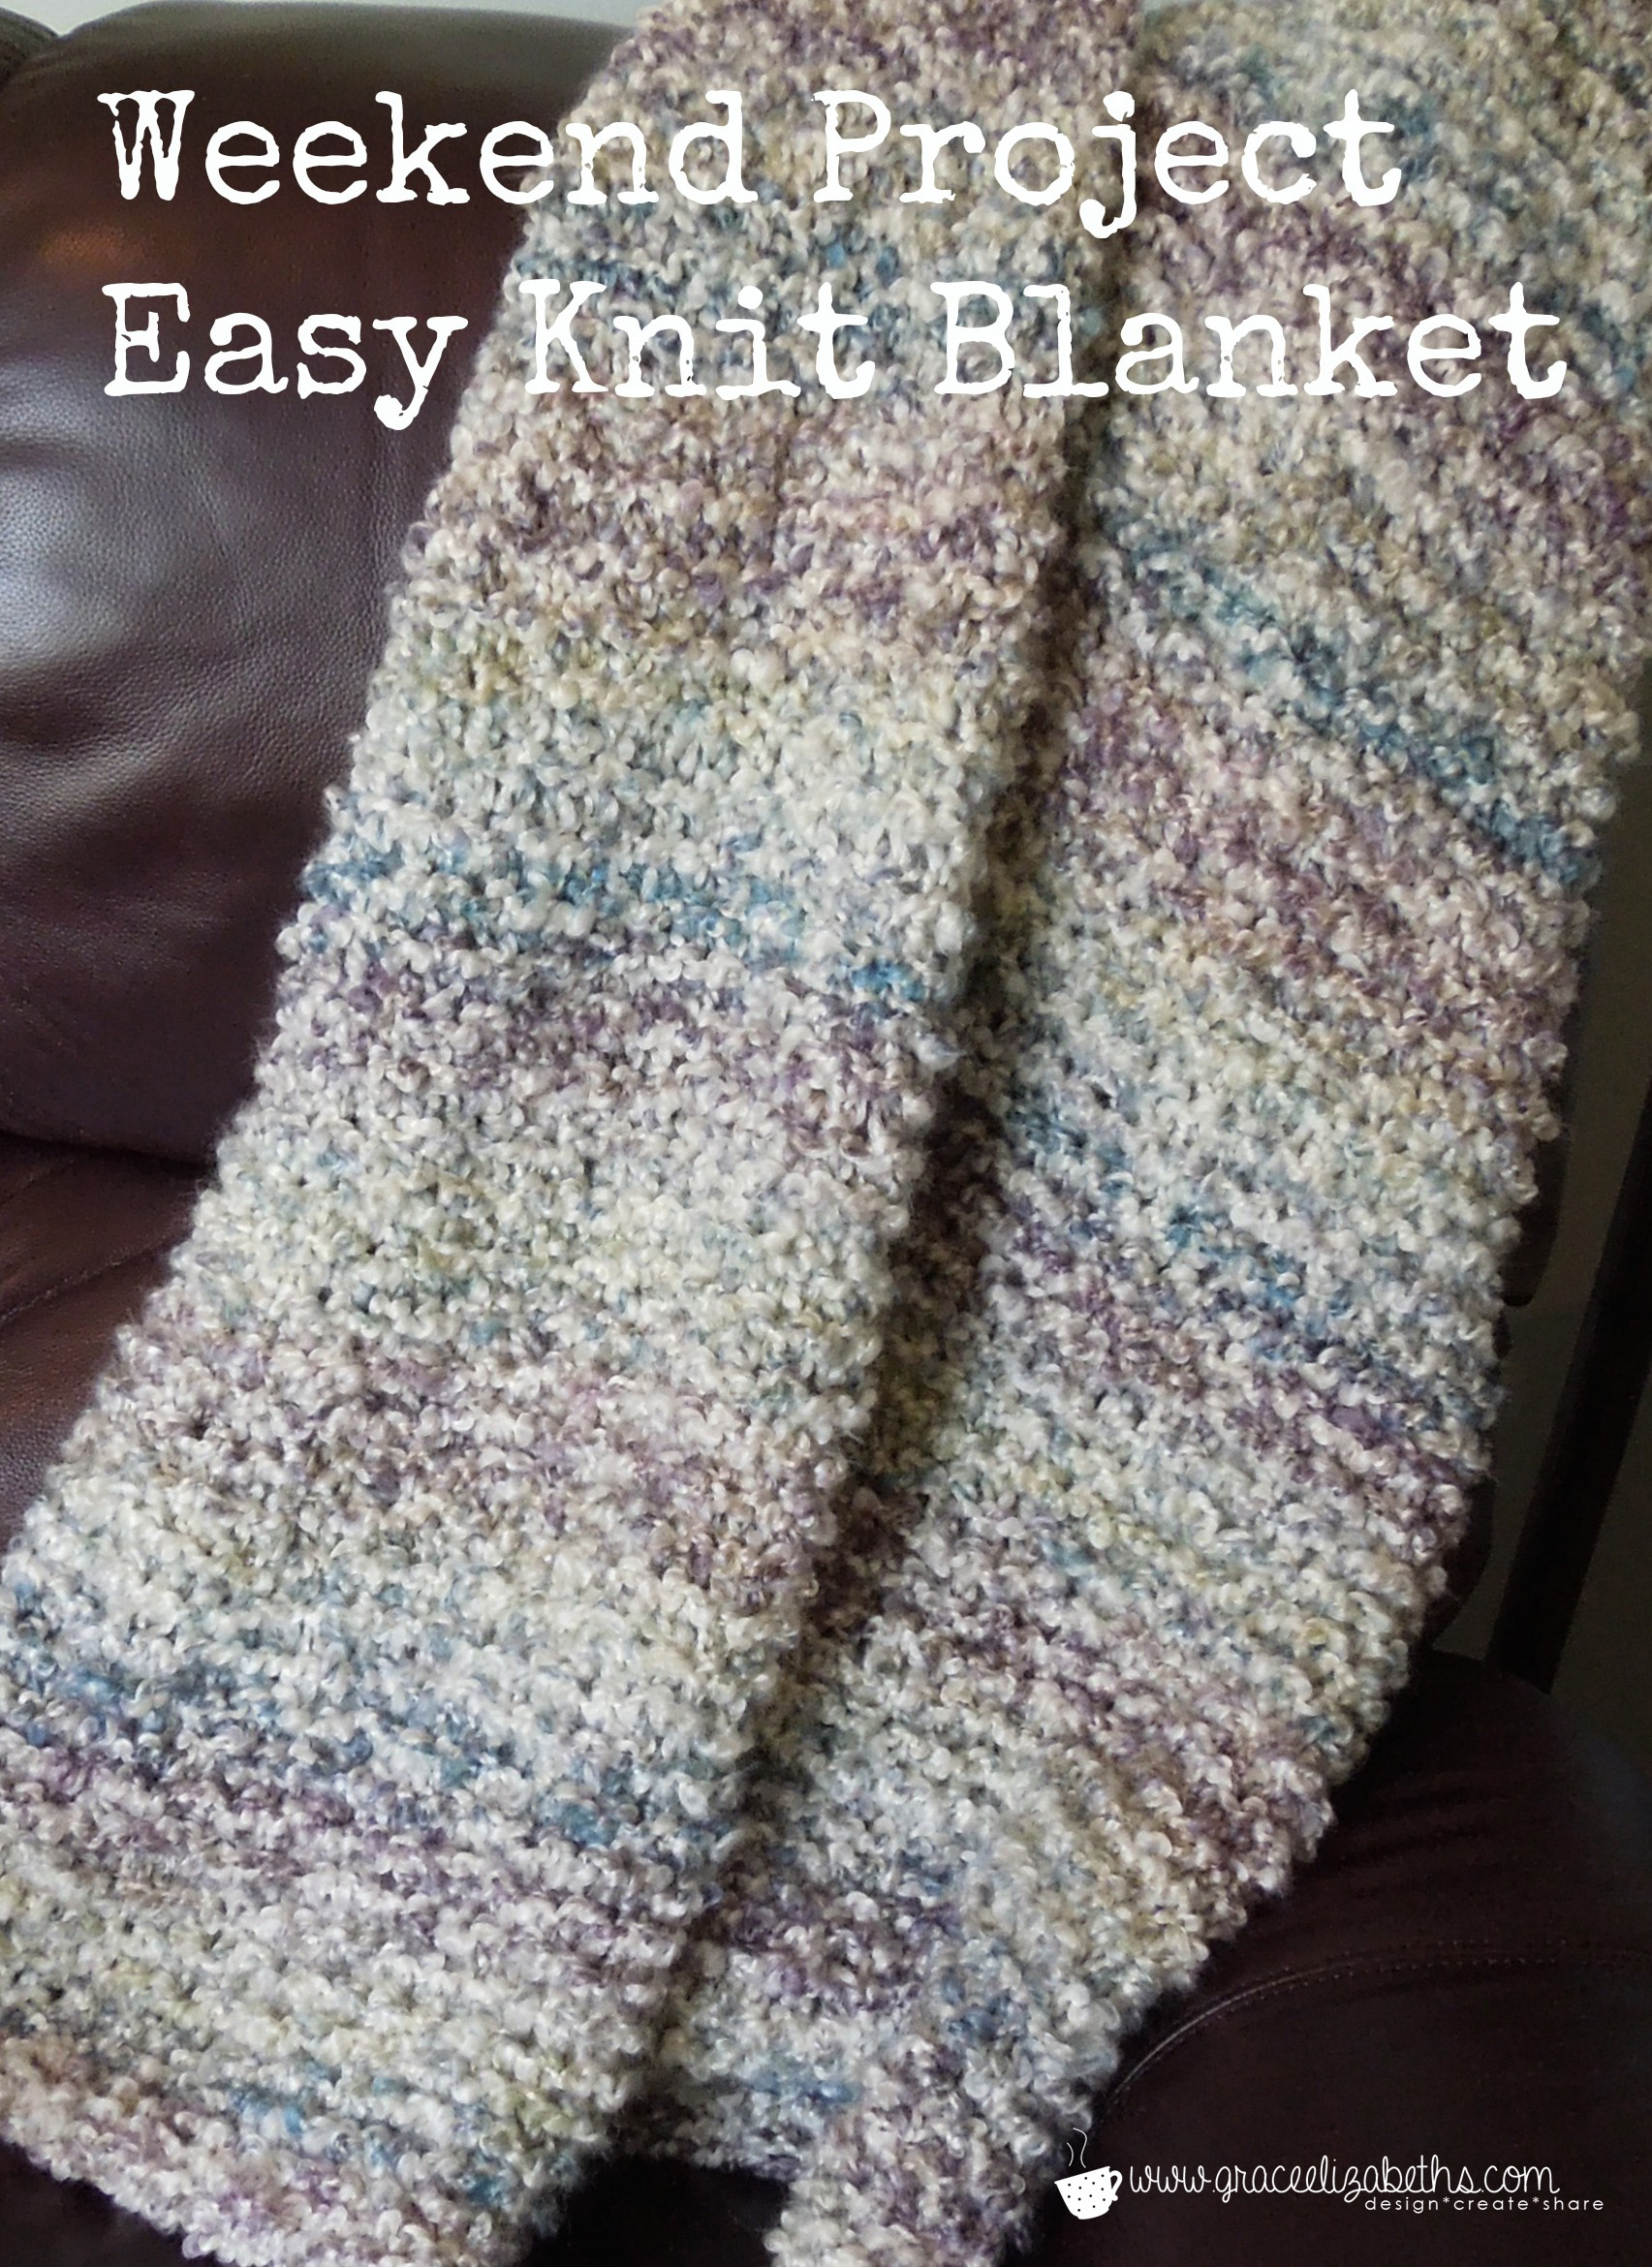 Easy Knitting Blanket Patterns : Weekend Project: Free Easy Knit Blanket Pattern - Grace Elizabeths